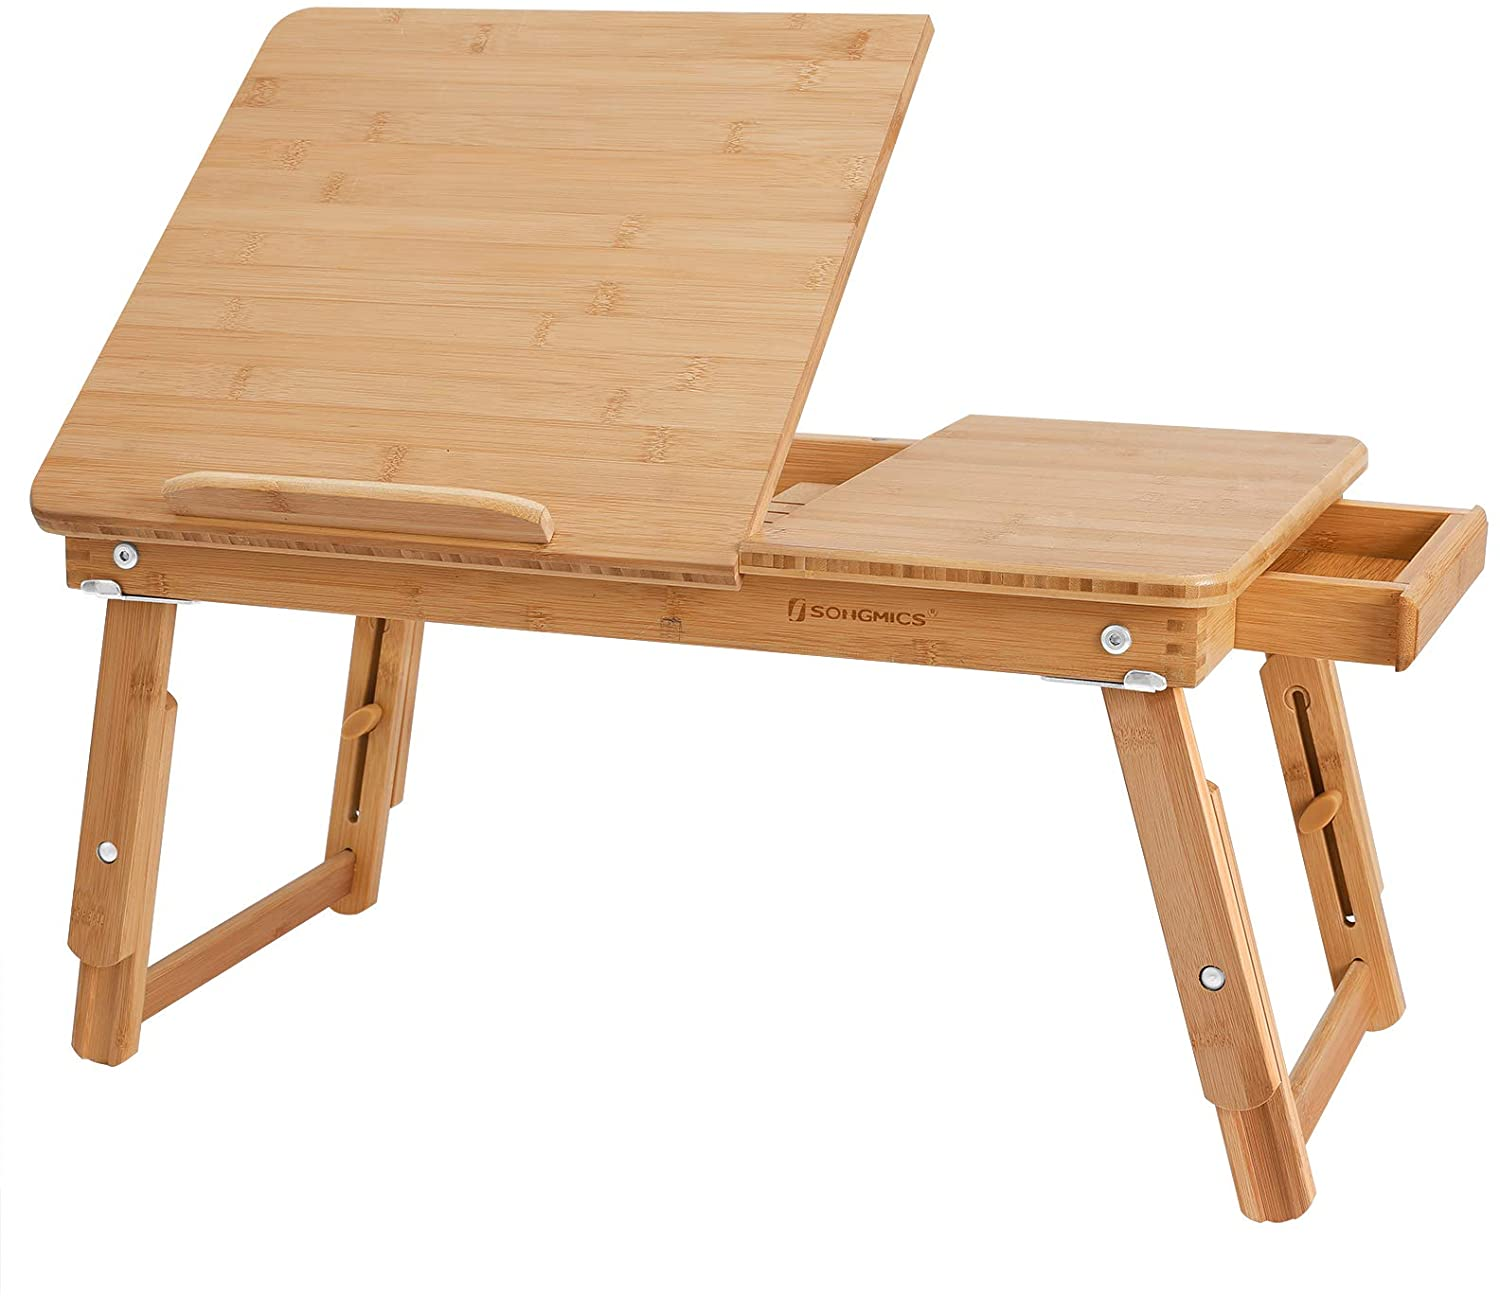 Top 15 Laptop Bed Table Desks (Lapdesks) of [year] 6